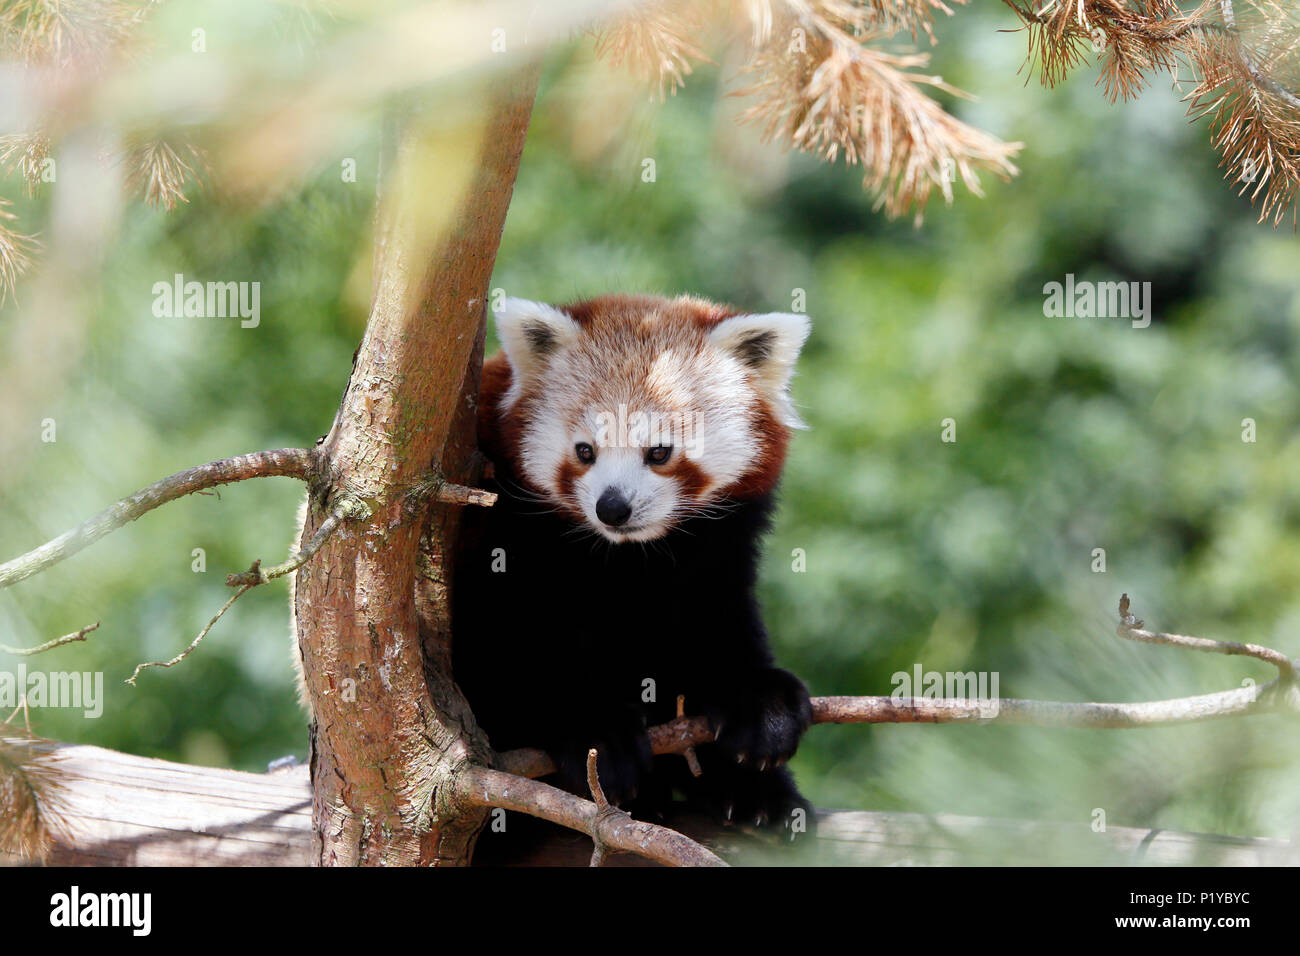 China. Province of Yunnan. Russet-red panda (Ailurus fulgens) in a tree. - Stock Image